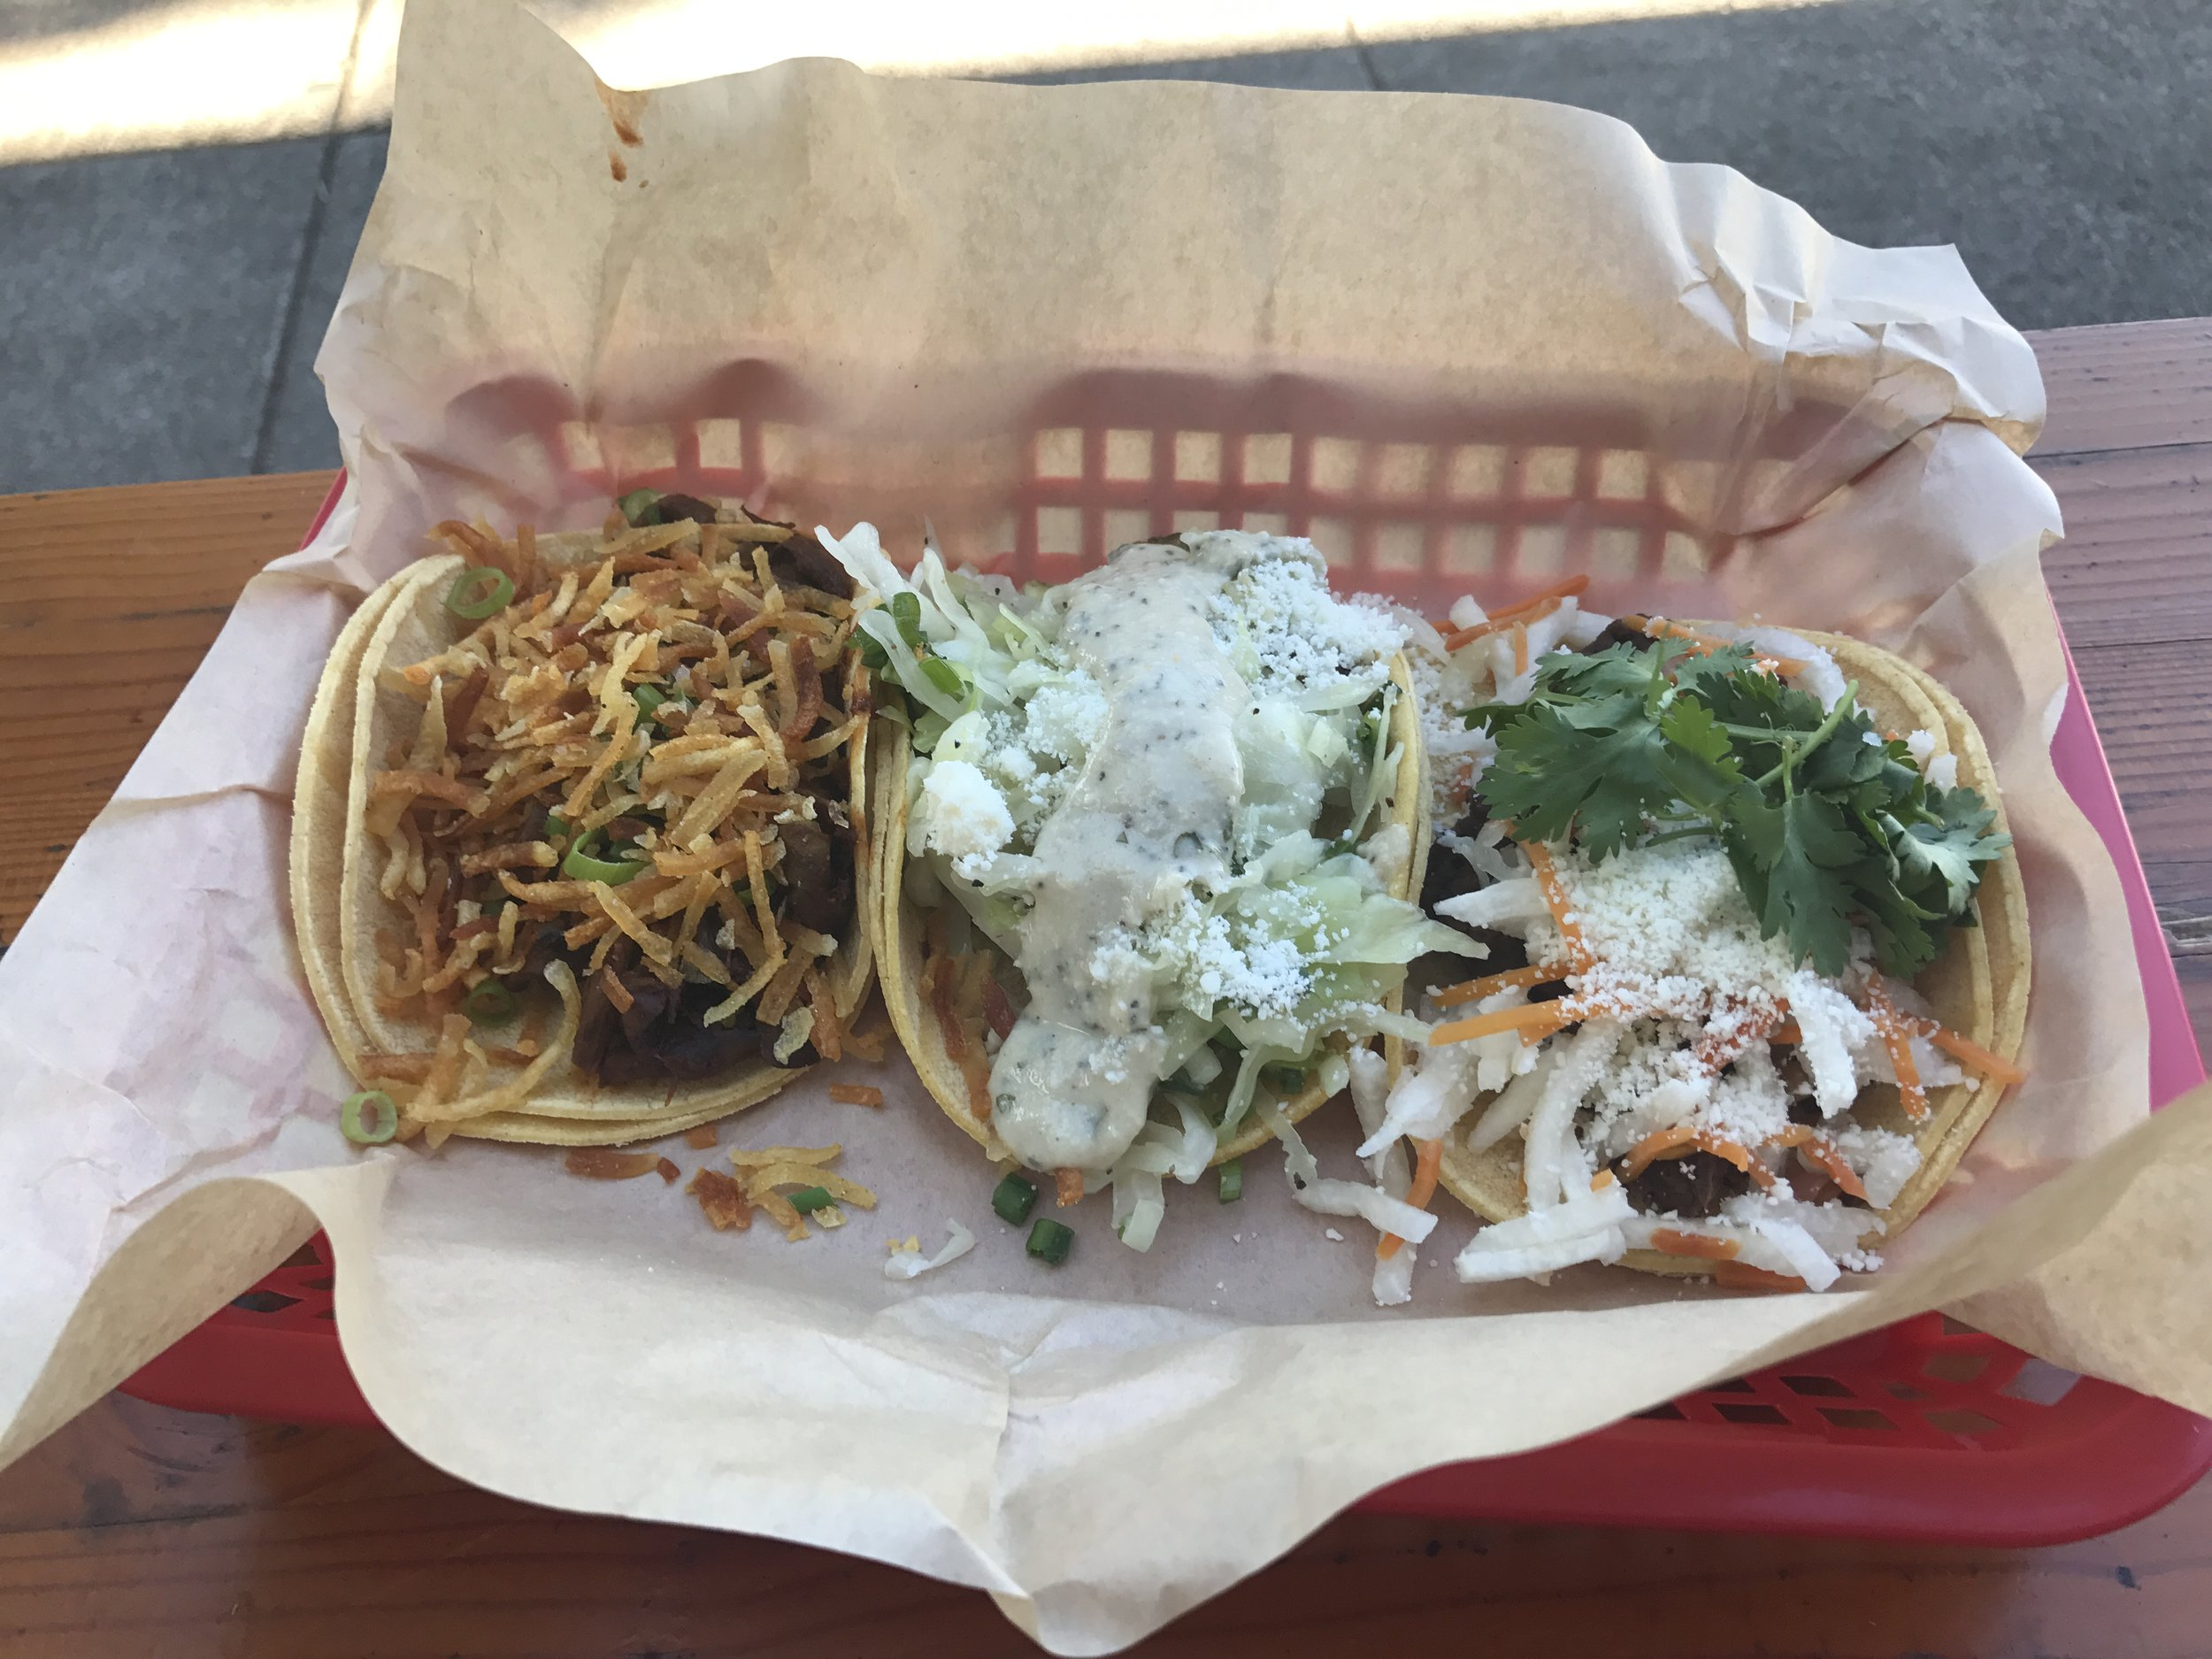 Stella tacos - lunch in Portland